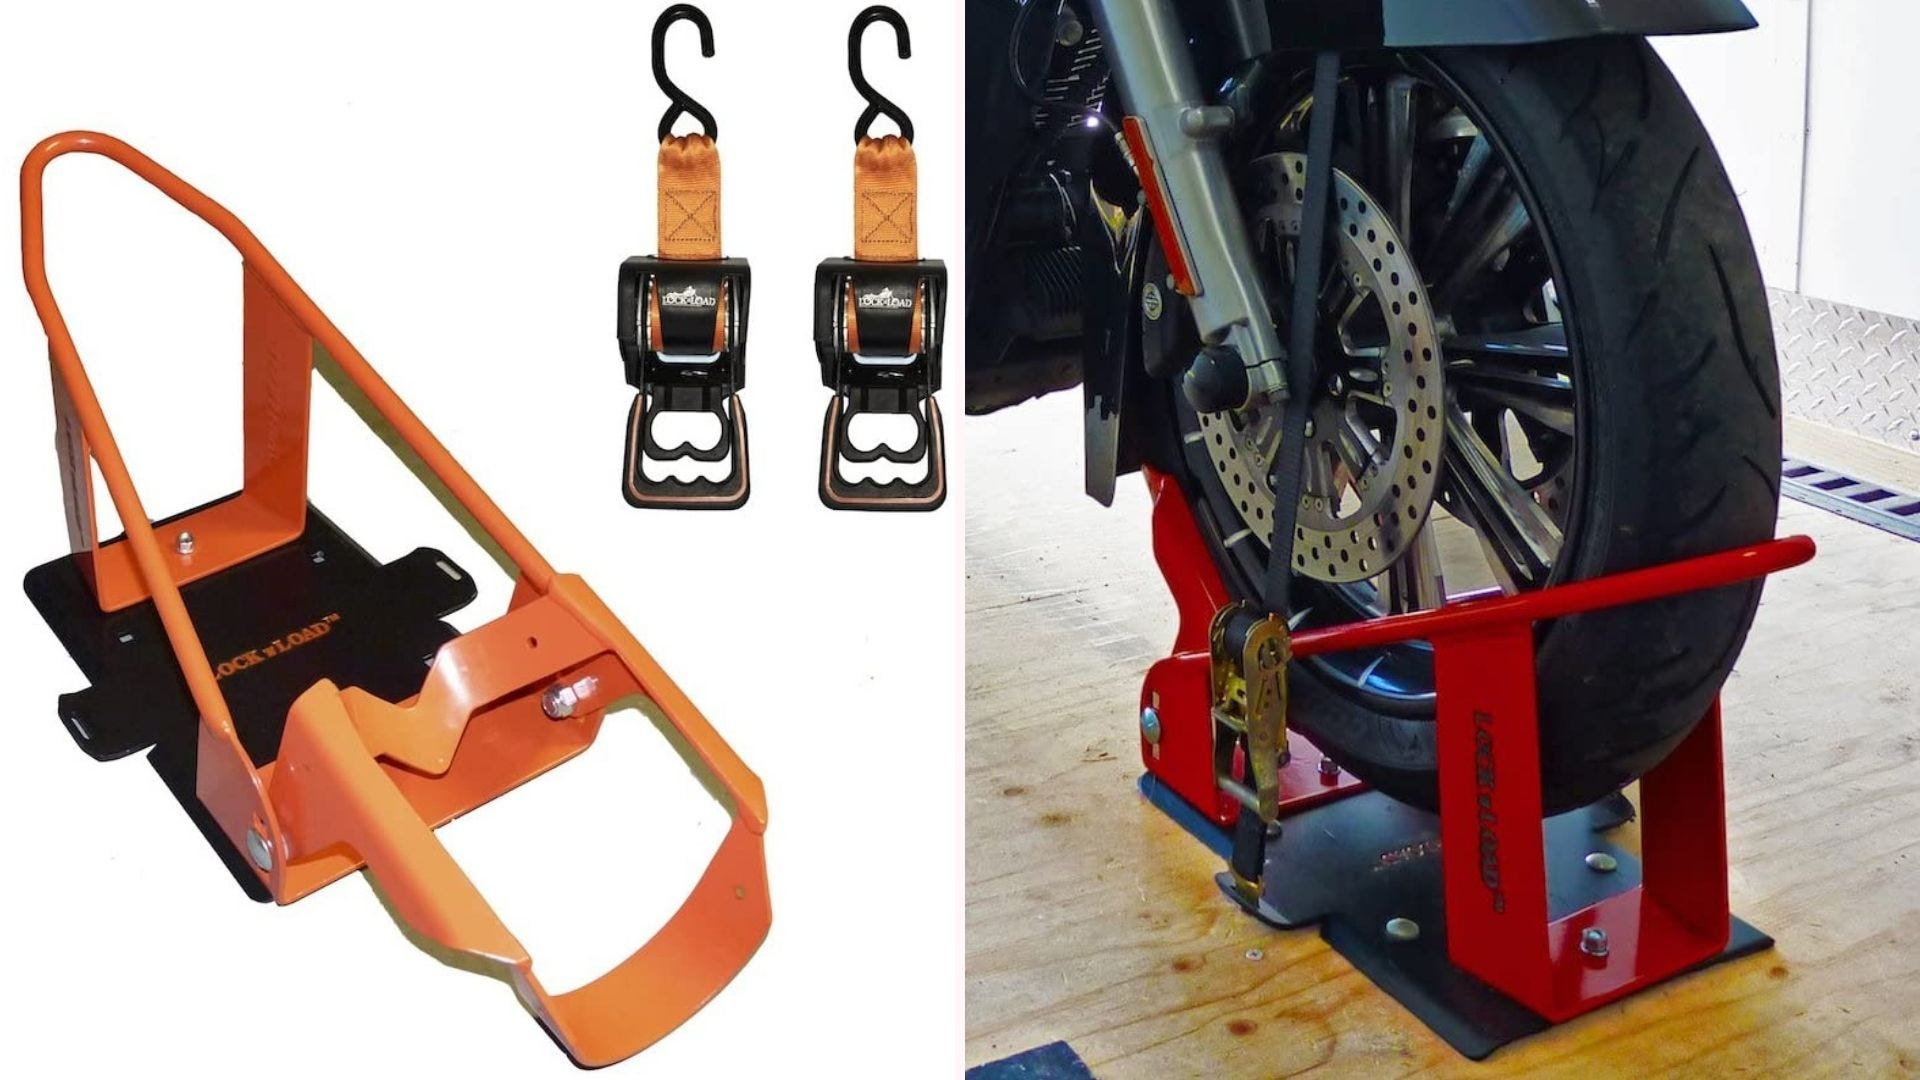 On the left, a steel black and orange wheel chock sits next to two quick-release straps. On the right, the wheel chock holds up the front tire of a motorcycle.